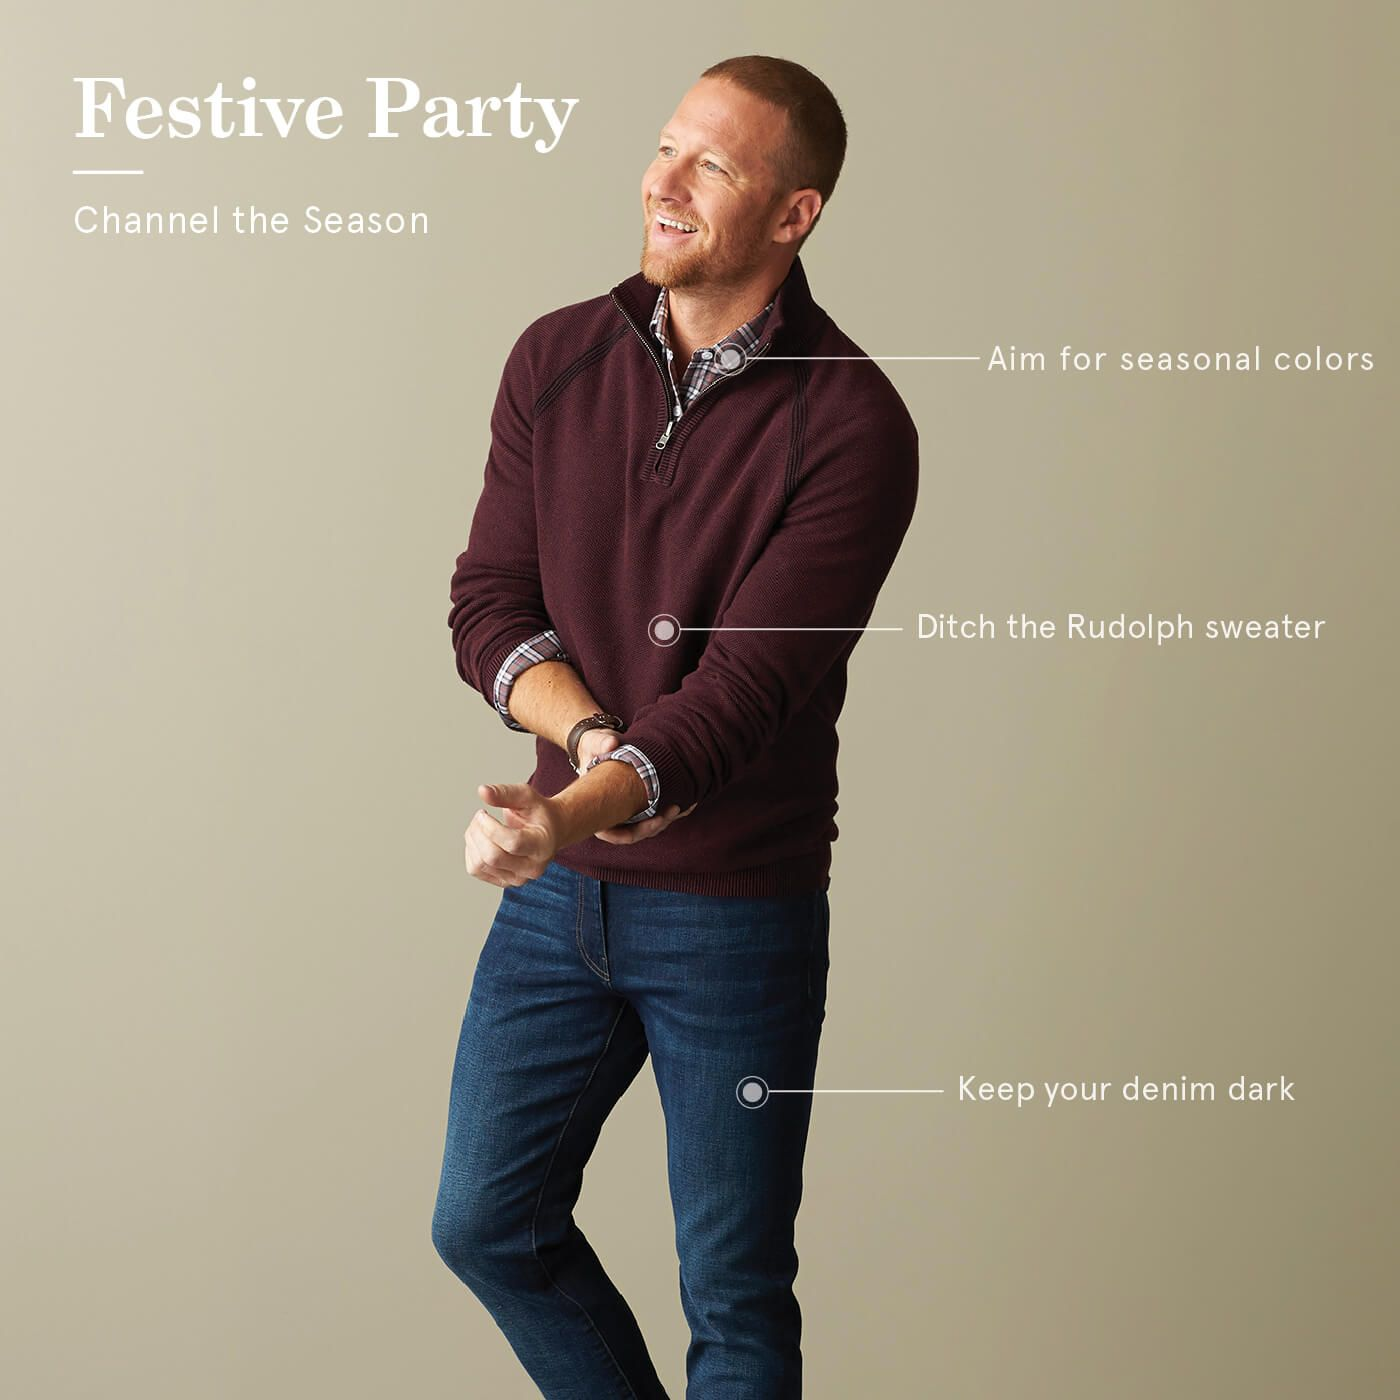 Decoding The Holiday Dress Code